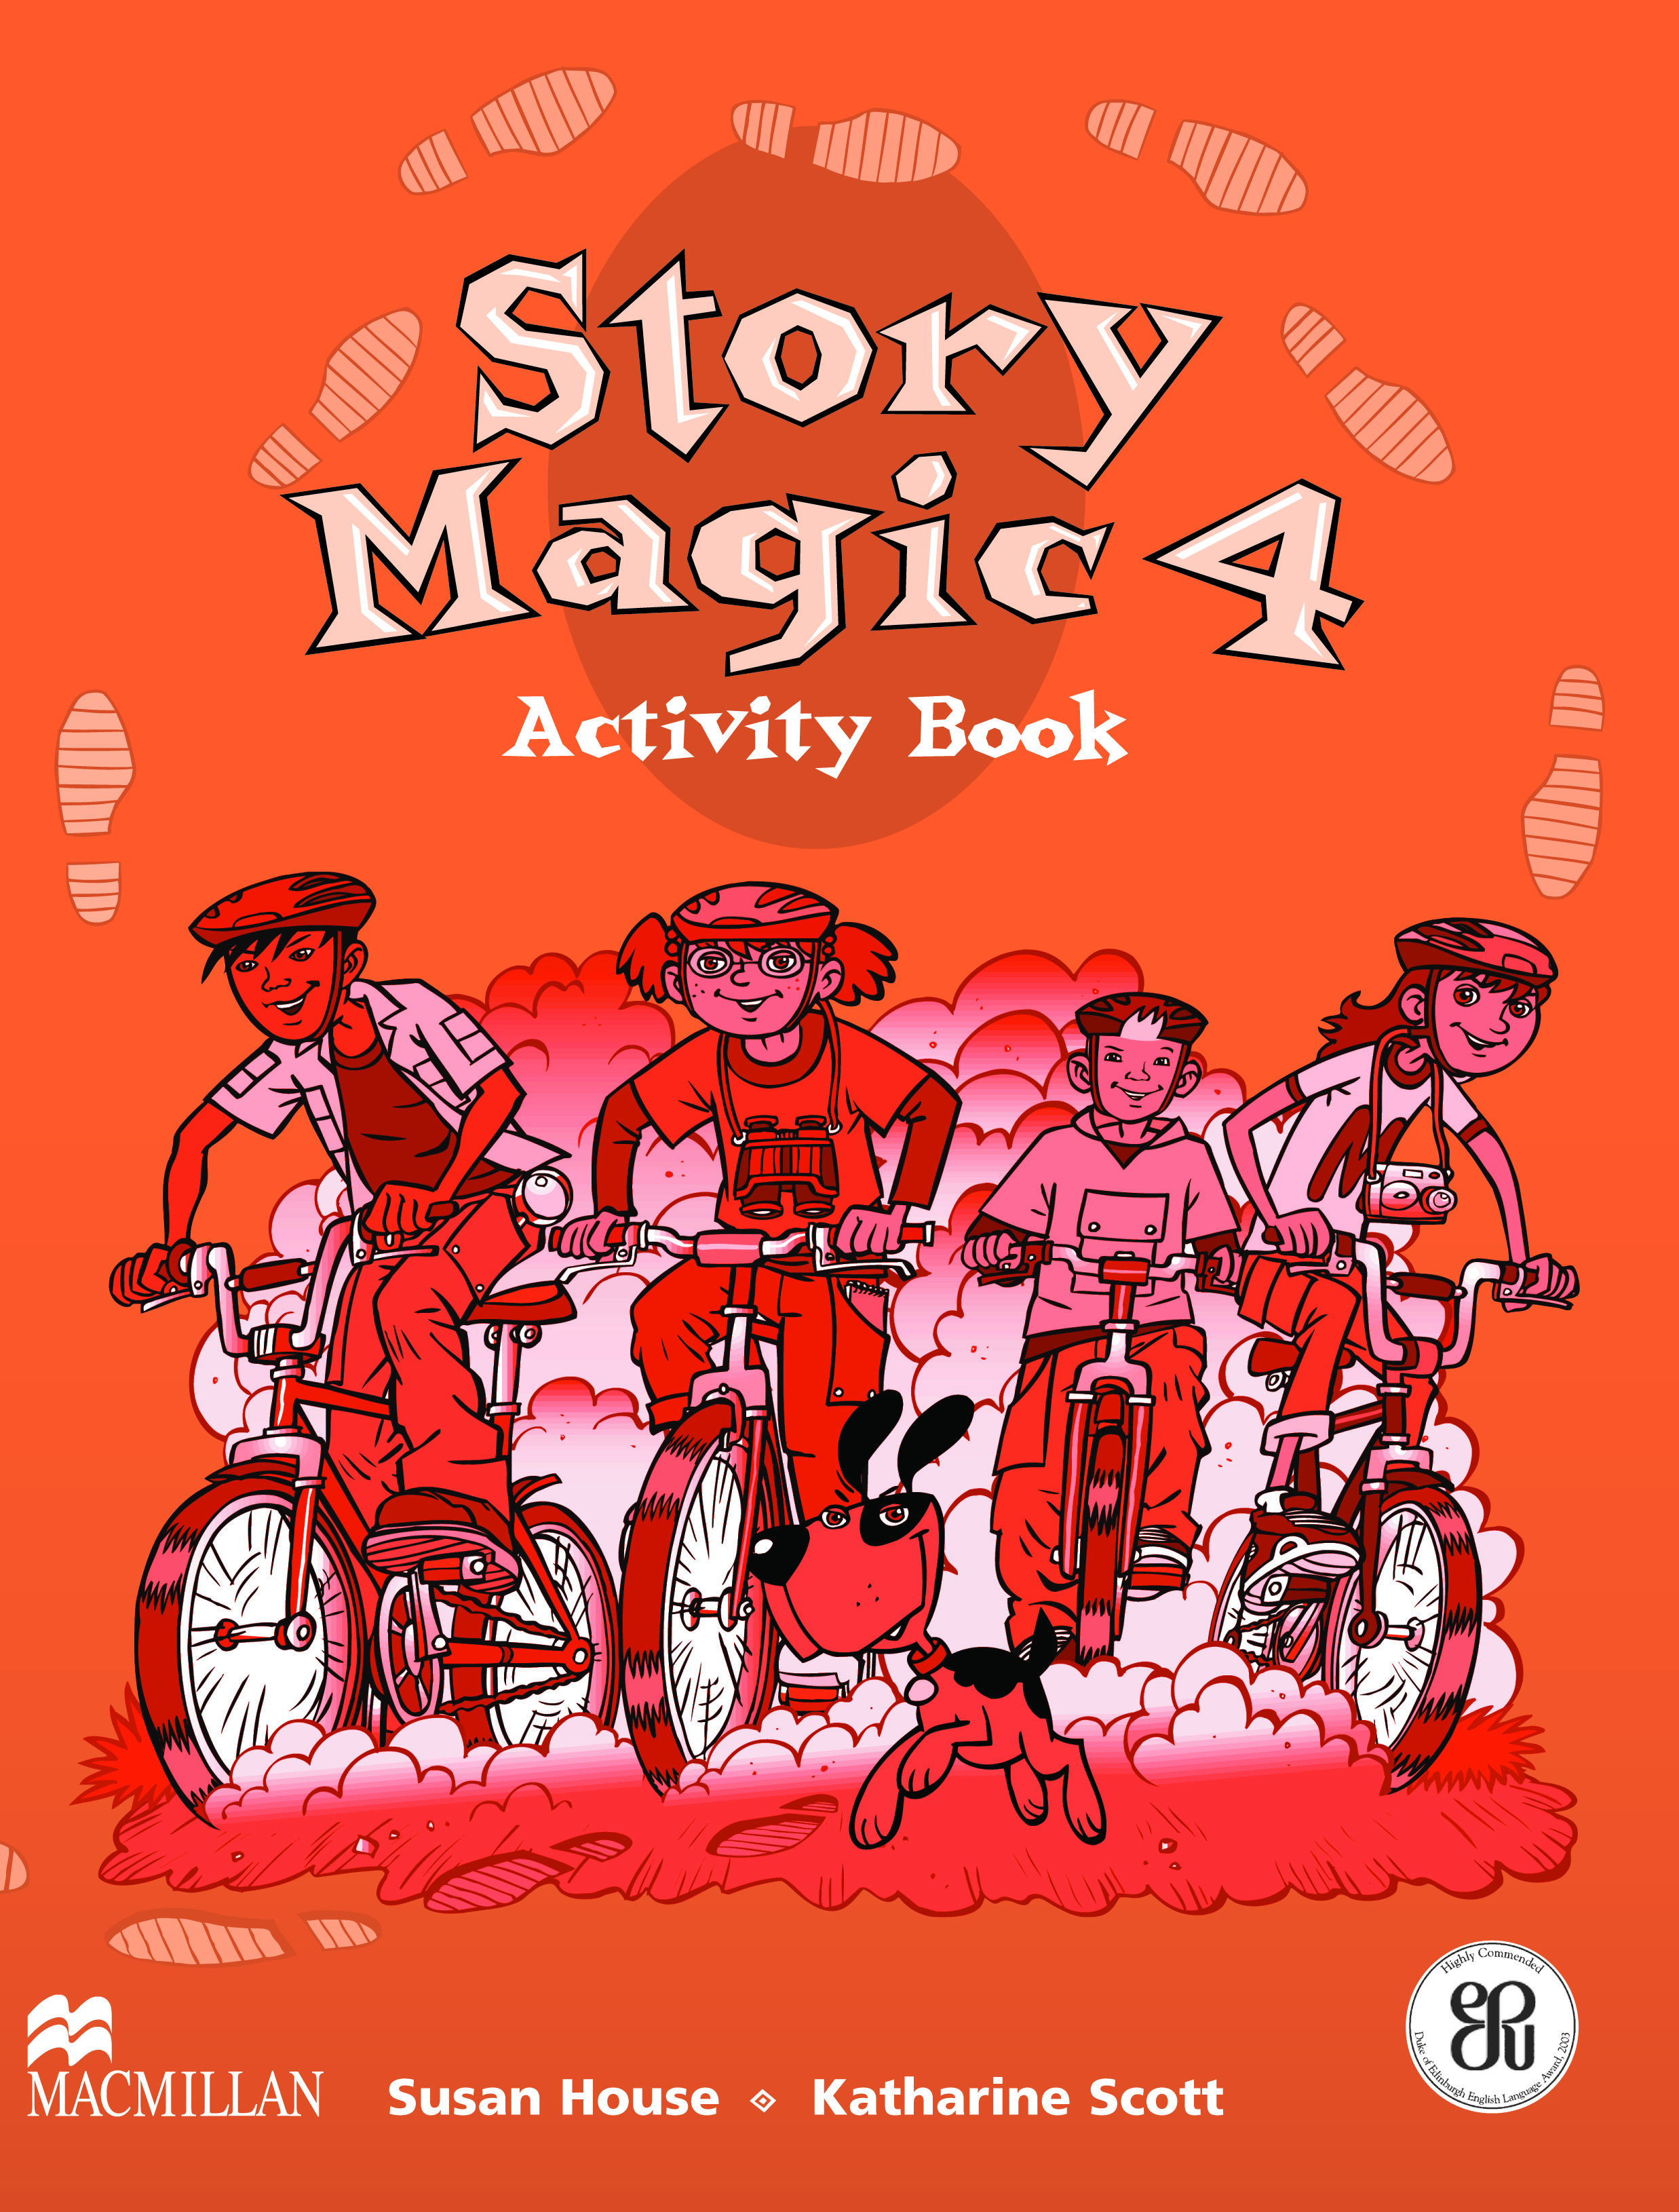 Story Magic 4 Activity Book